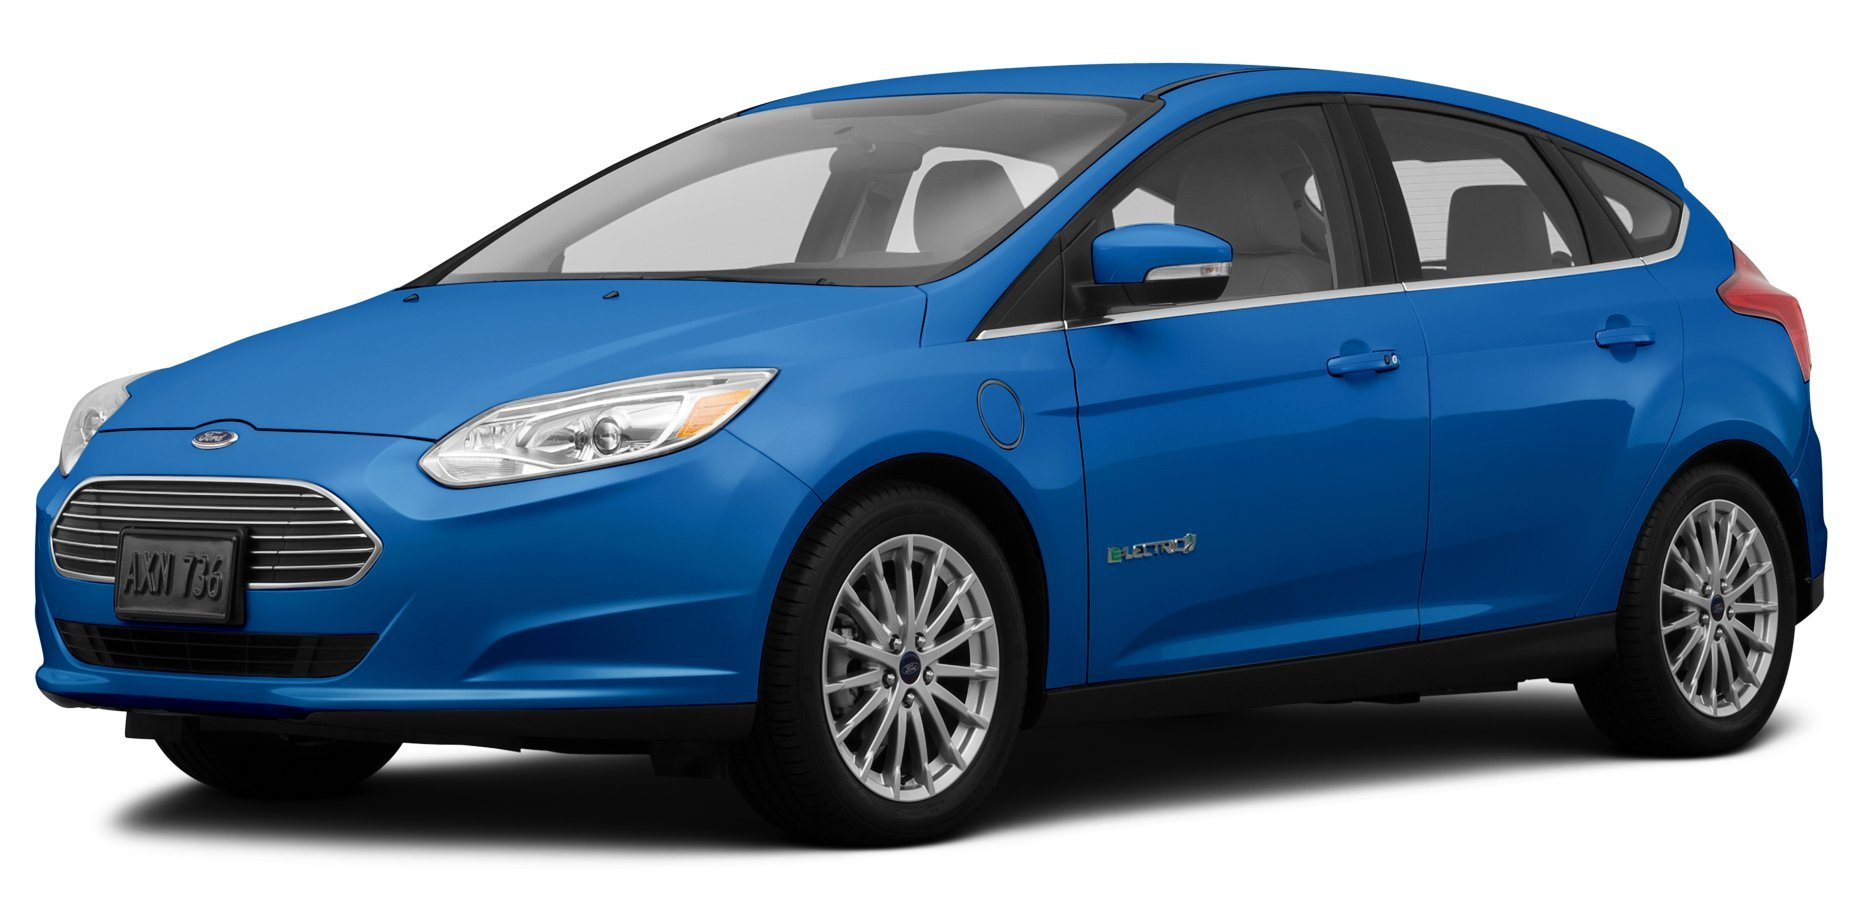 2014 ford focus reviews images and specs. Black Bedroom Furniture Sets. Home Design Ideas